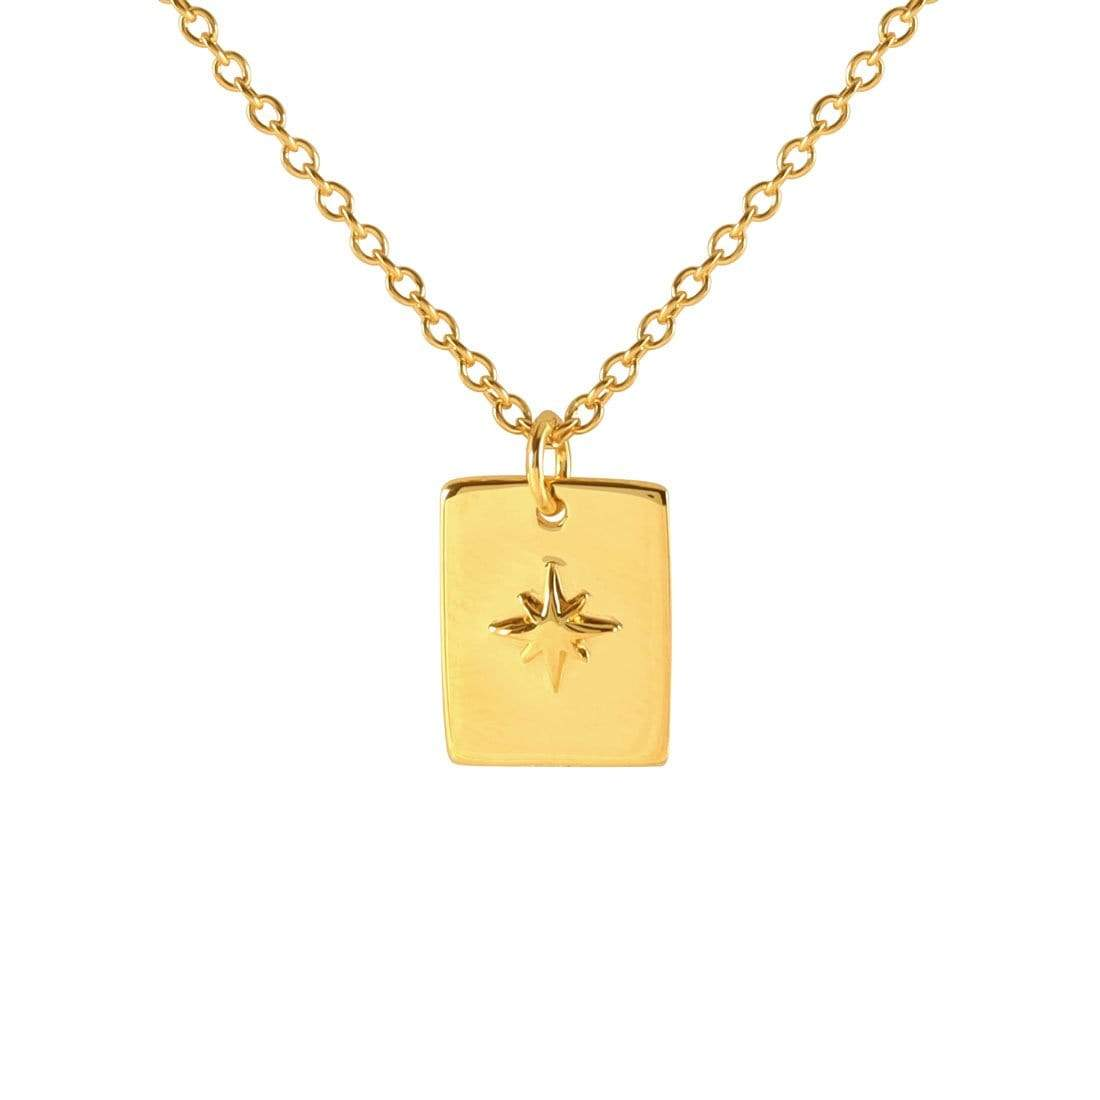 Midsummer Star Necklaces Gold Celestial Medallion Necklace